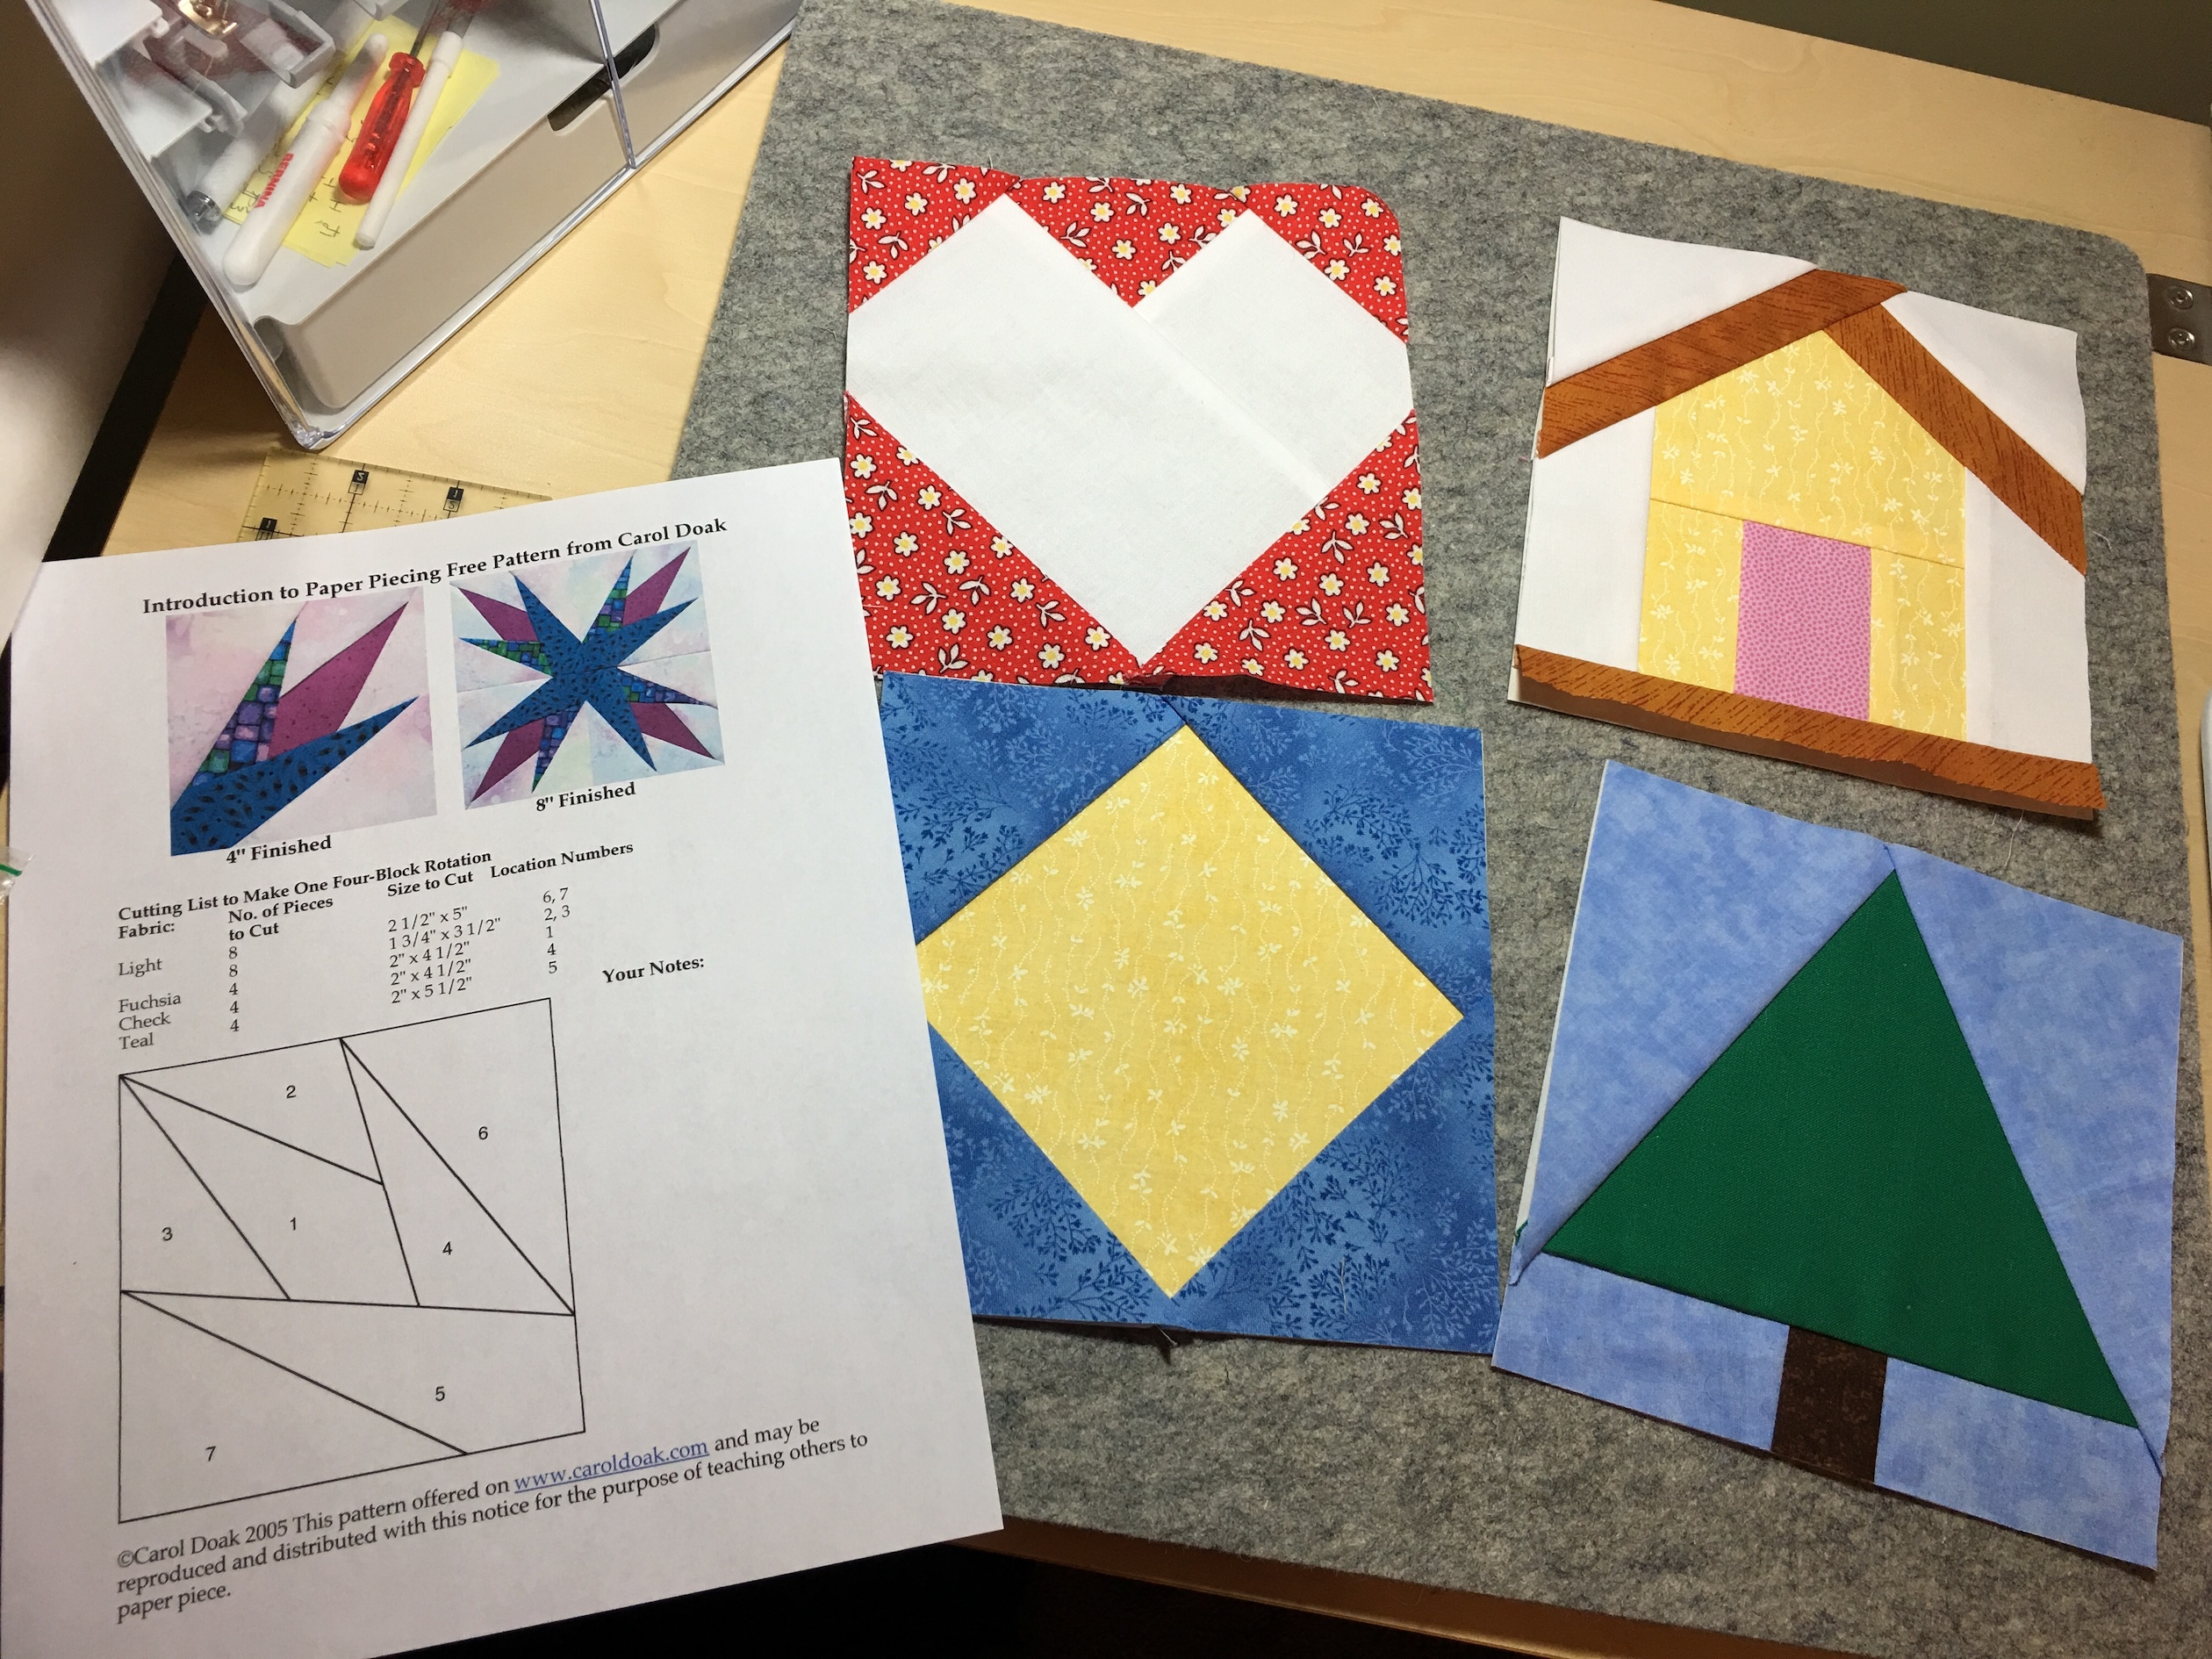 Learning To Foundation Paper Piece Quilt Cabana Patterns